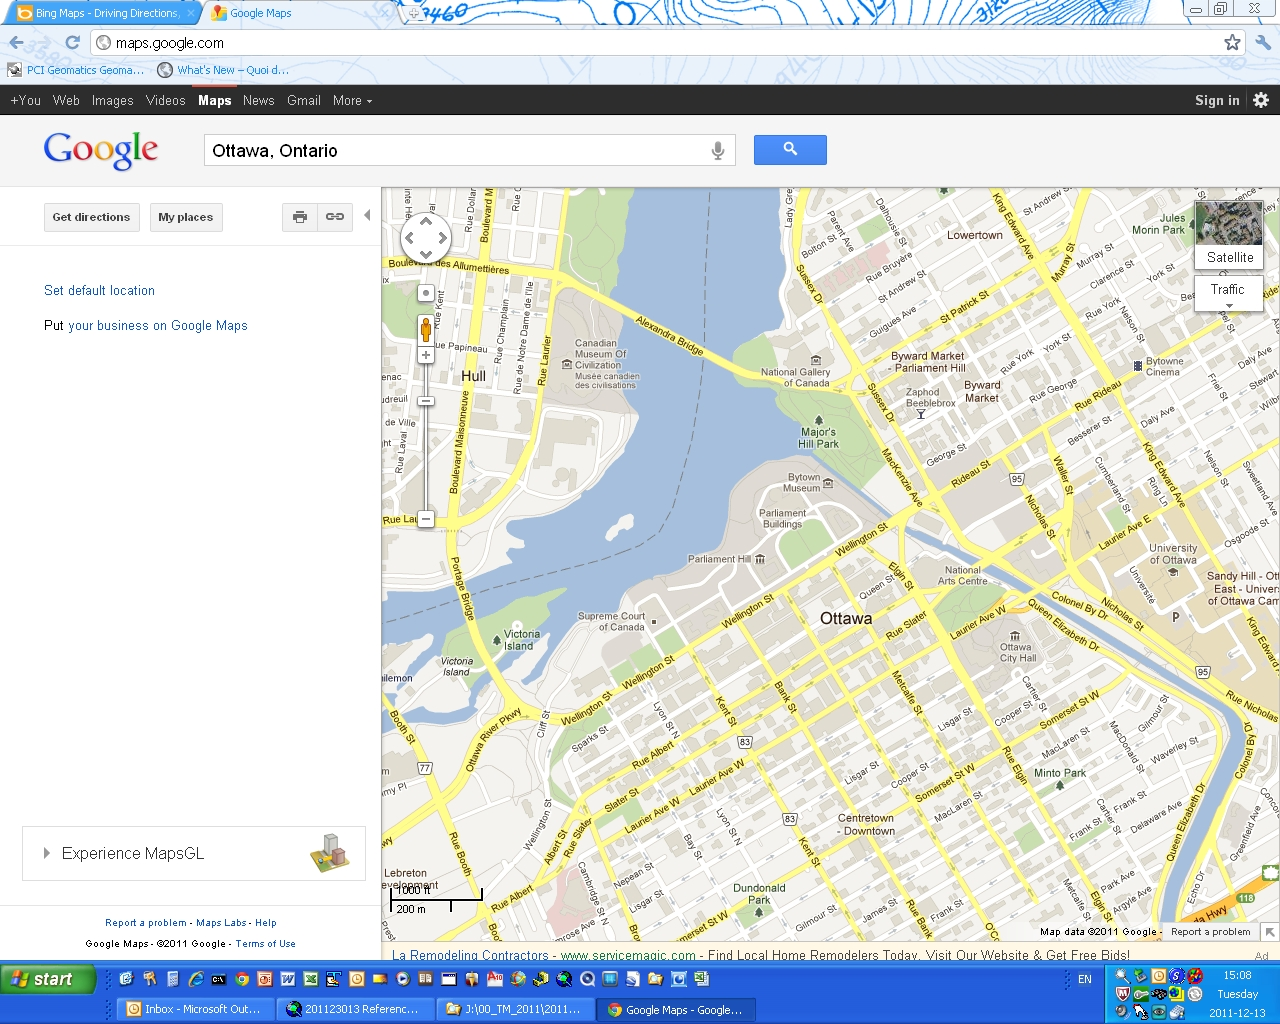 Bing Maps Archives - Canadian GIS & Geomatics